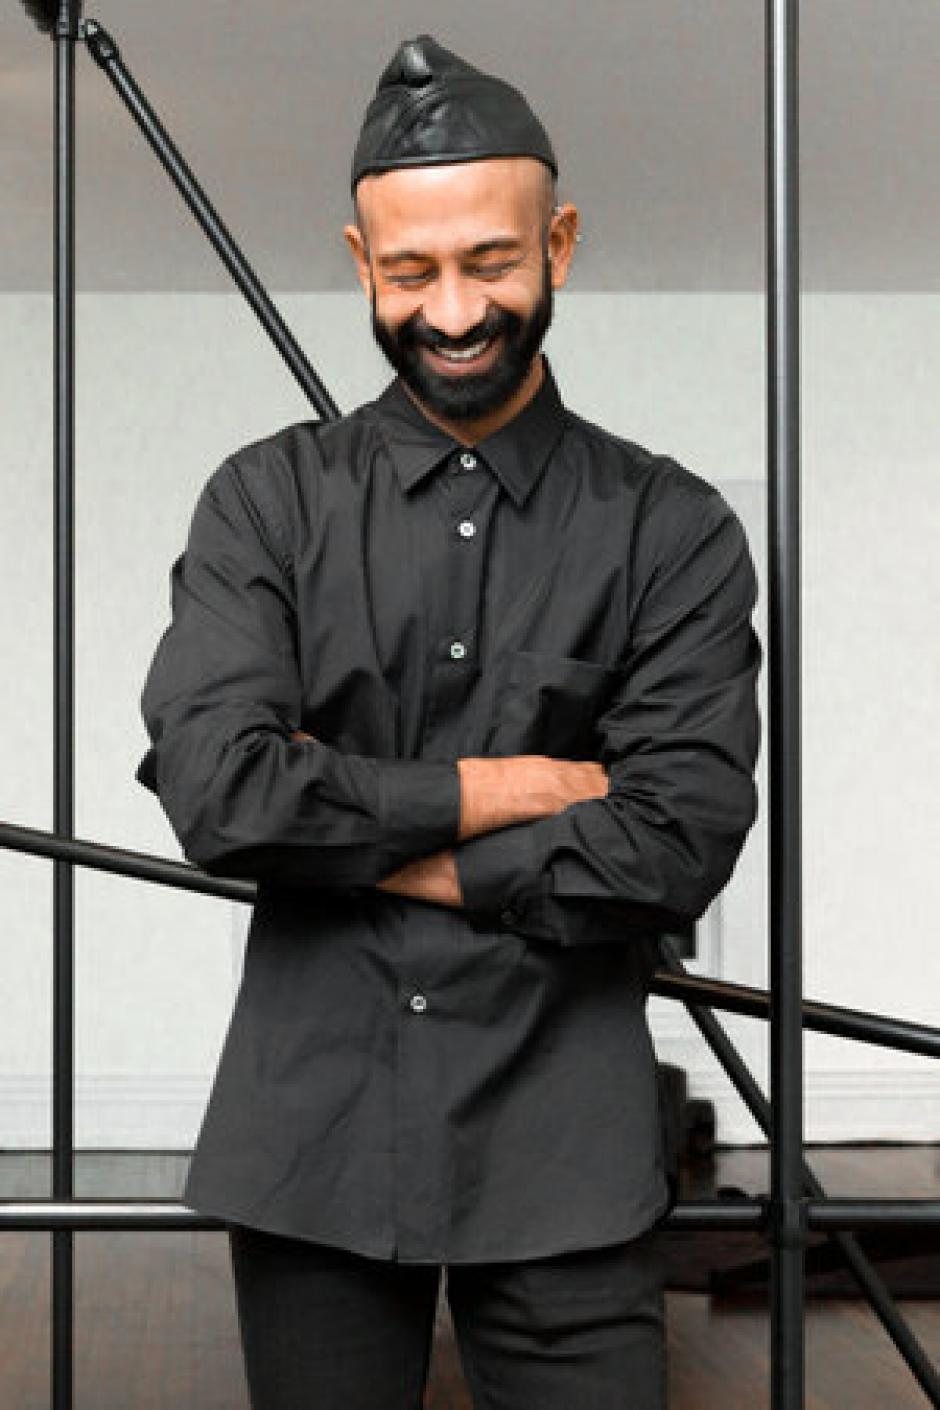 Photo of program faculty, Brendan Fernandes, looking down with arms folded, laughing